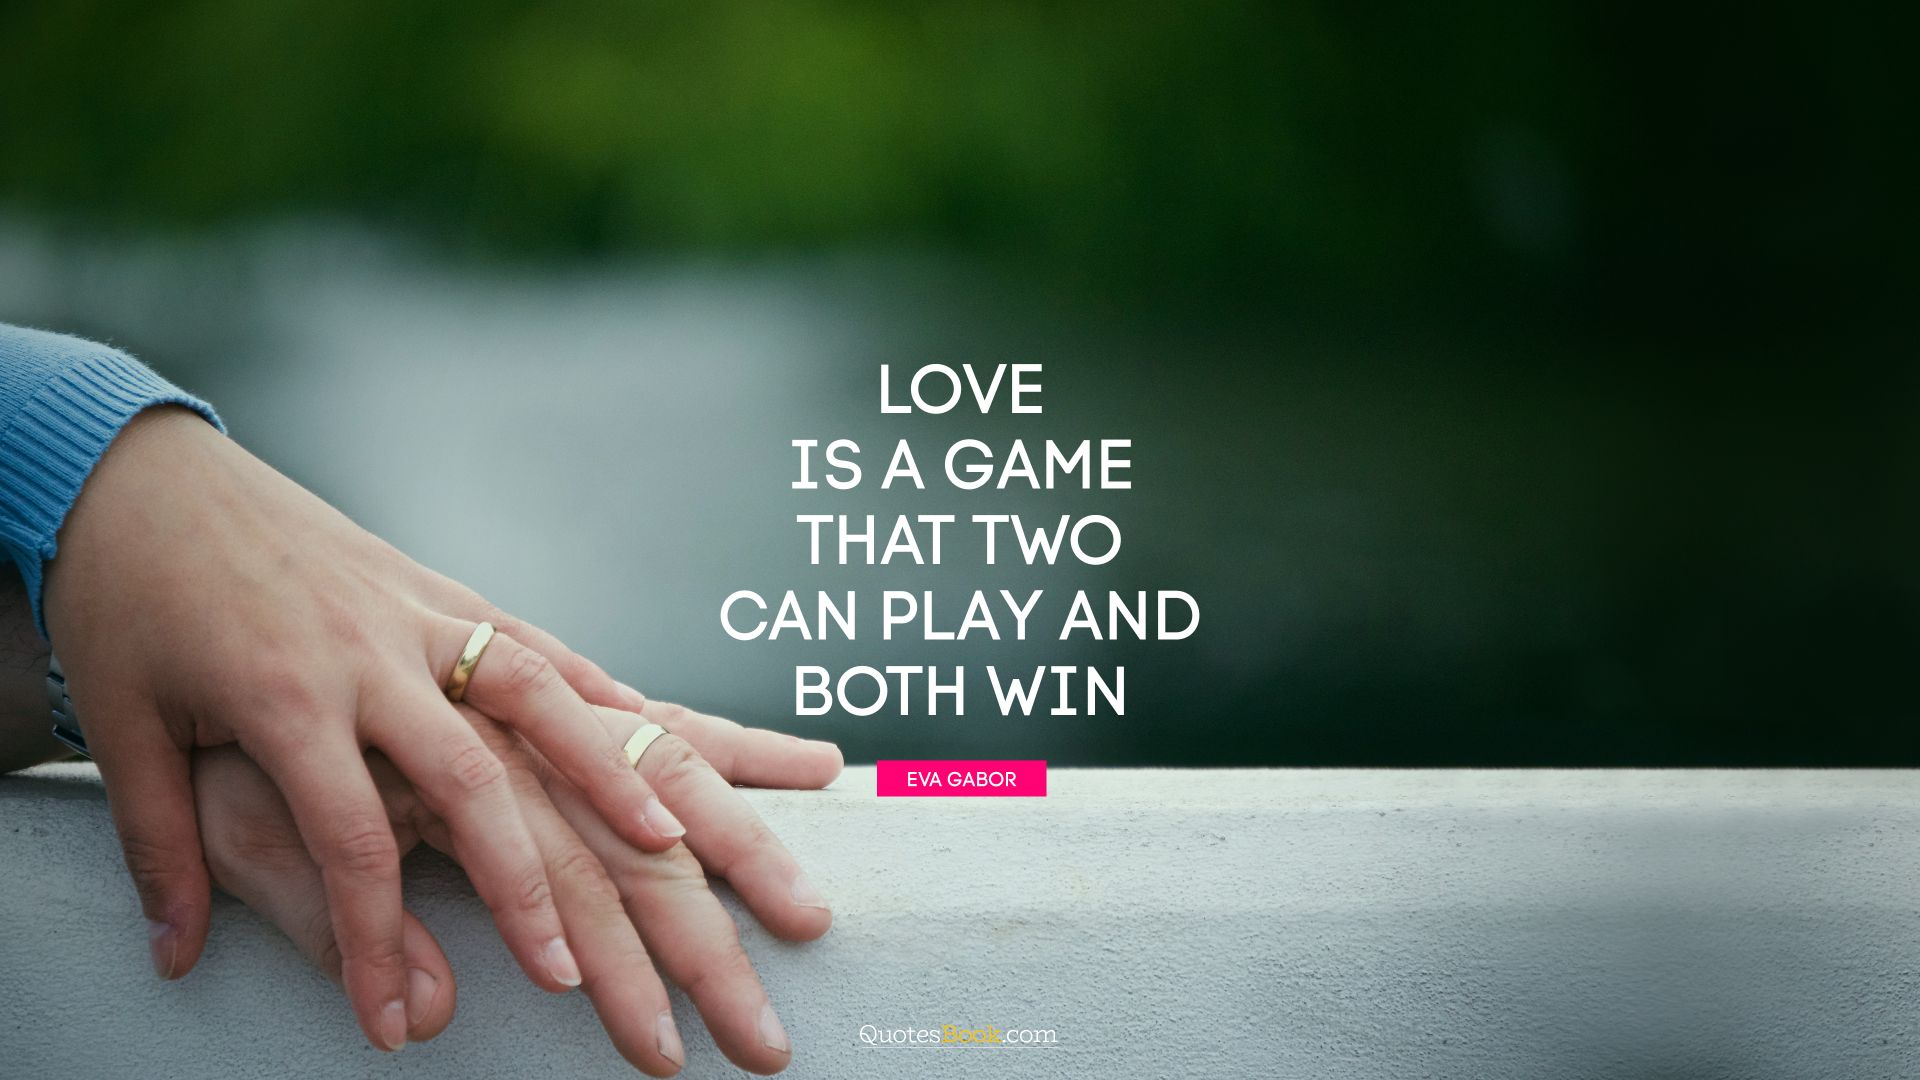 Love is a game that two can play and both win. - Quote by Eva Gabor